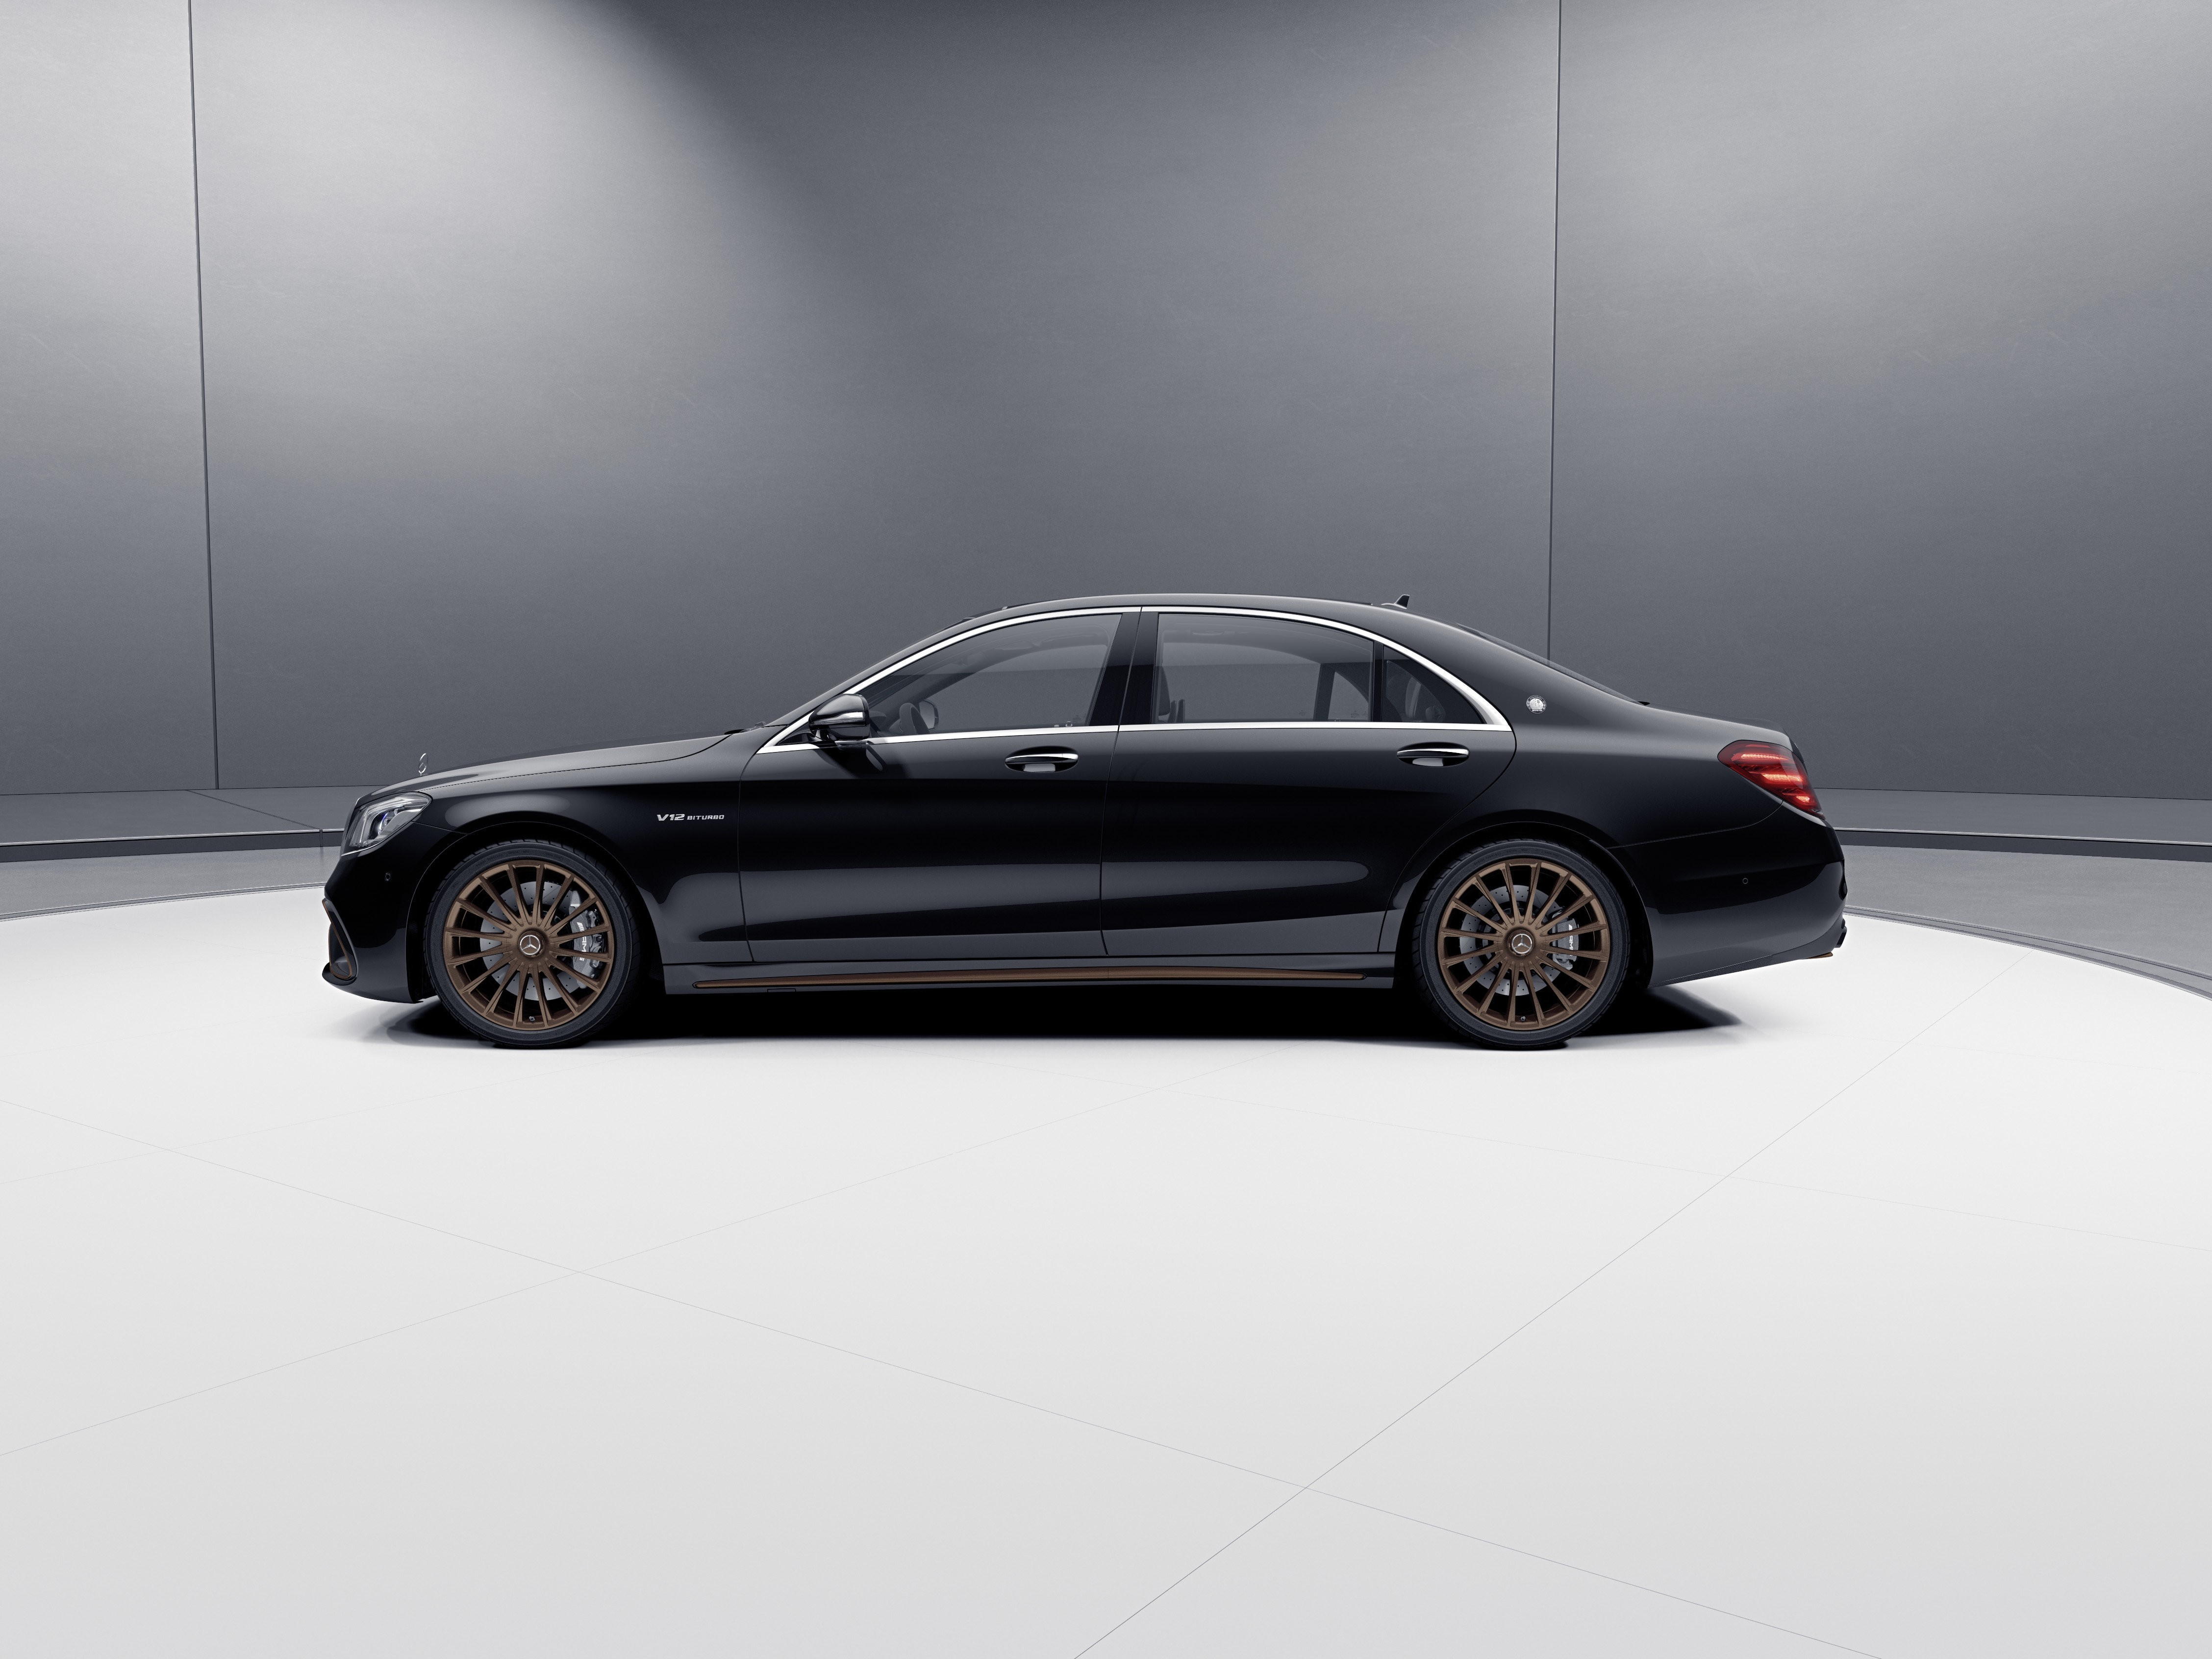 Mercedes-AMG S 65 Final Edition;Kraftstoffverbrauch kombiniert 14,2 l/100 km, CO2-Emissionen kombiniert 325 g/km*  Mercedes-AMG S 65 Final Edition;Combined fuel consumption 14.2 l/100 km, combined CO2 emissions 325 g/km*